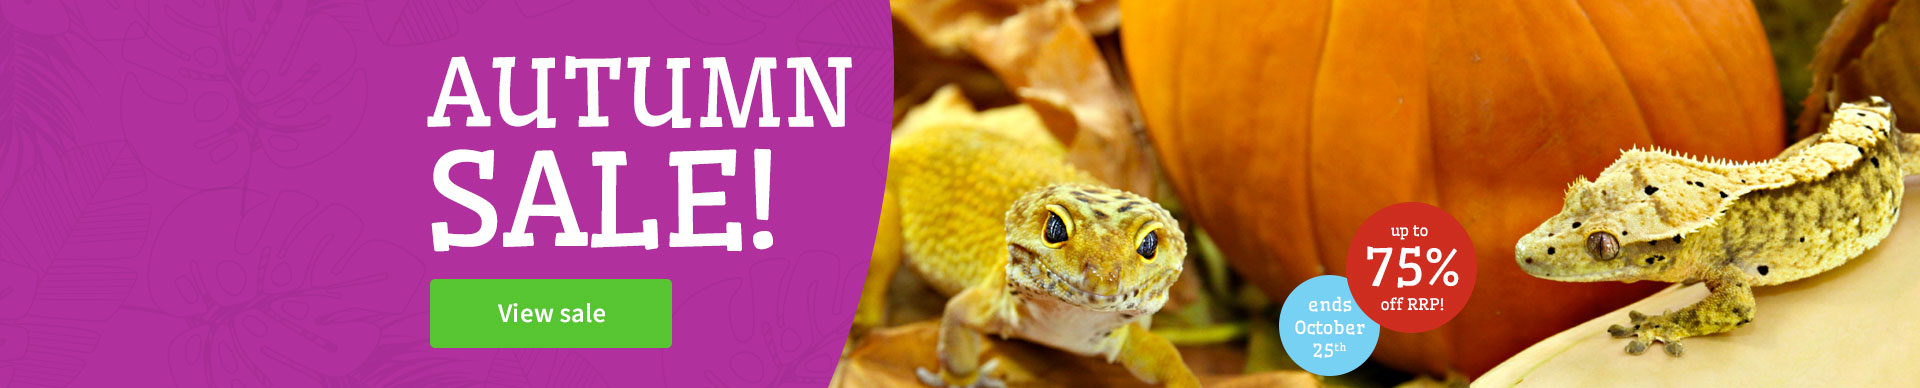 autumn sale reptile products